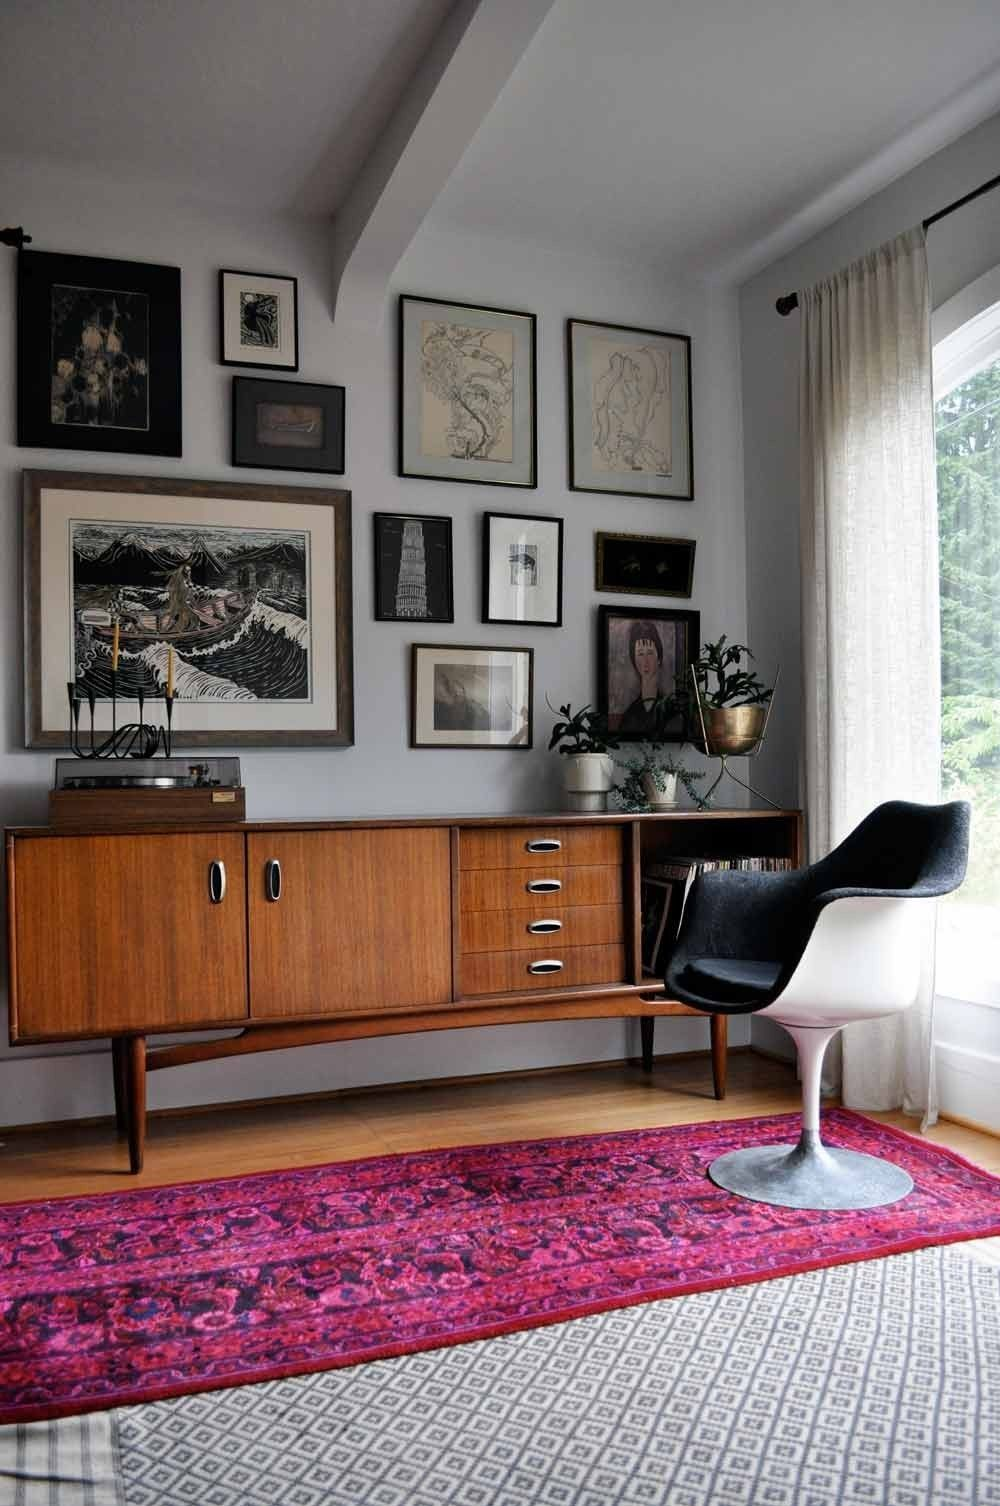 updated style mid century modern chez moi pinterest wohnzimmer m bel und haus. Black Bedroom Furniture Sets. Home Design Ideas